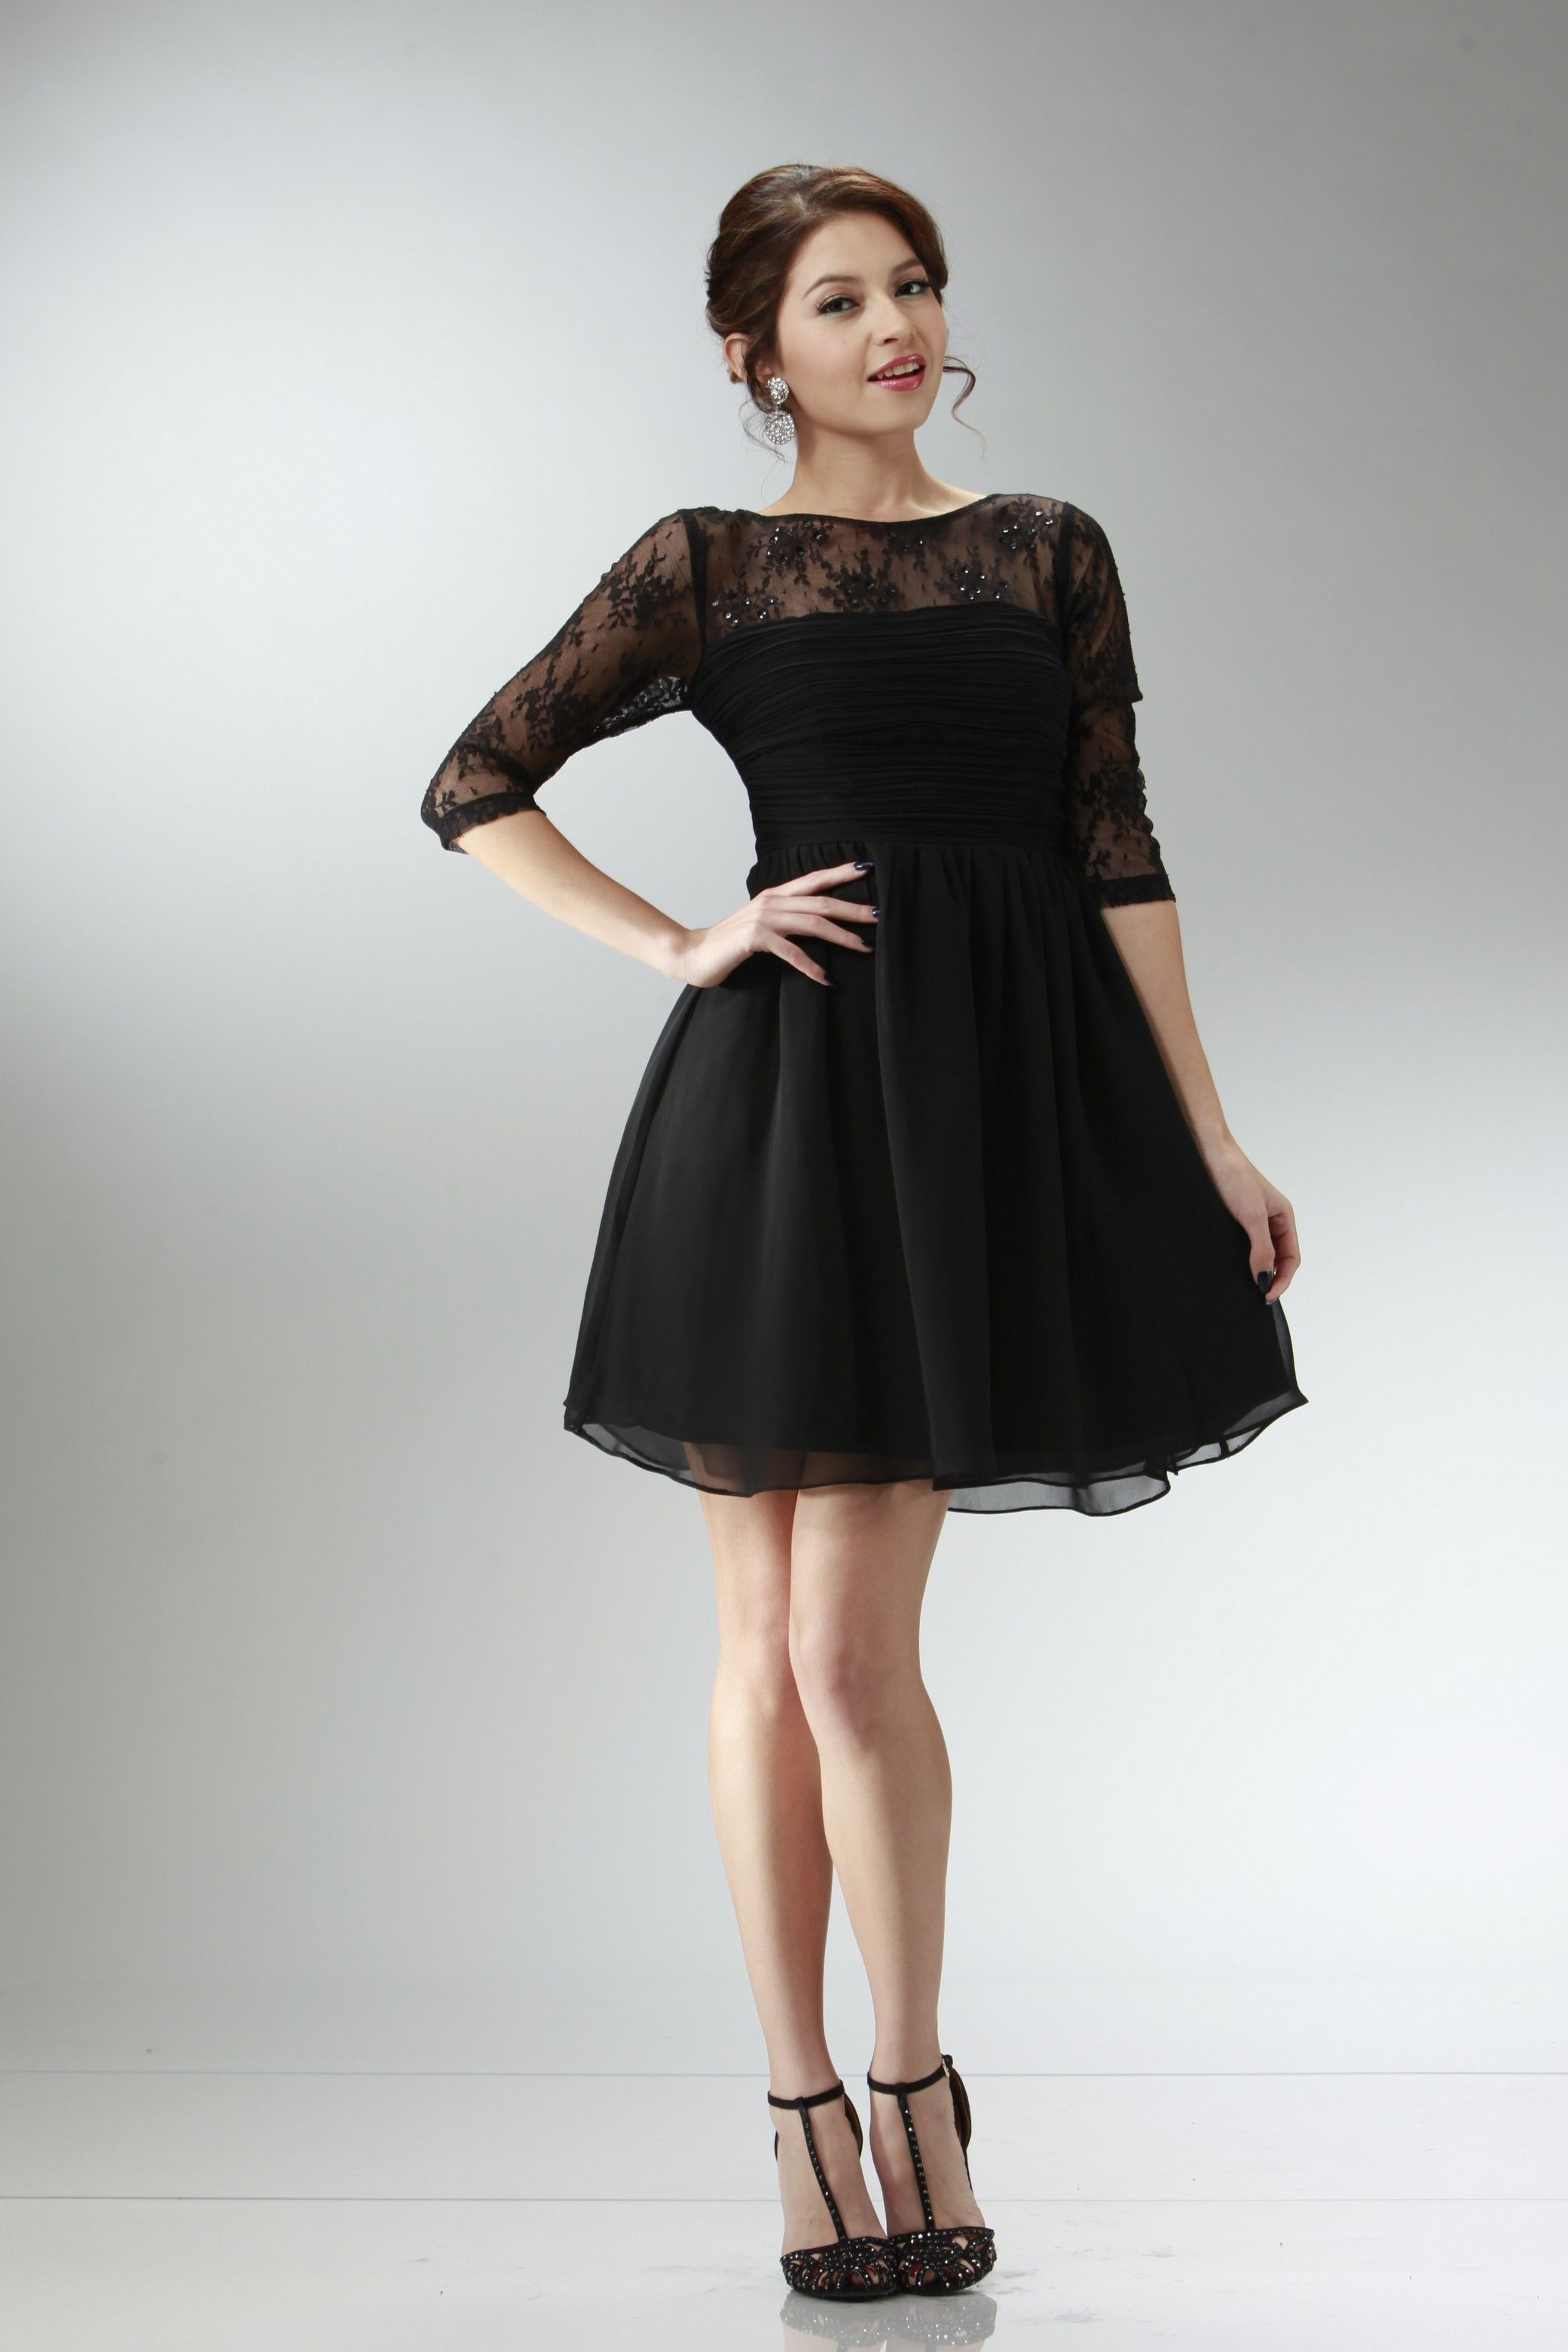 Elegant dresses with sleeves for teens champagne sleeved semi formal - Elegant Dresses With Sleeves For Teens Champagne Sleeved Semi Formal Teen Formal Dresses With Sleeves Download